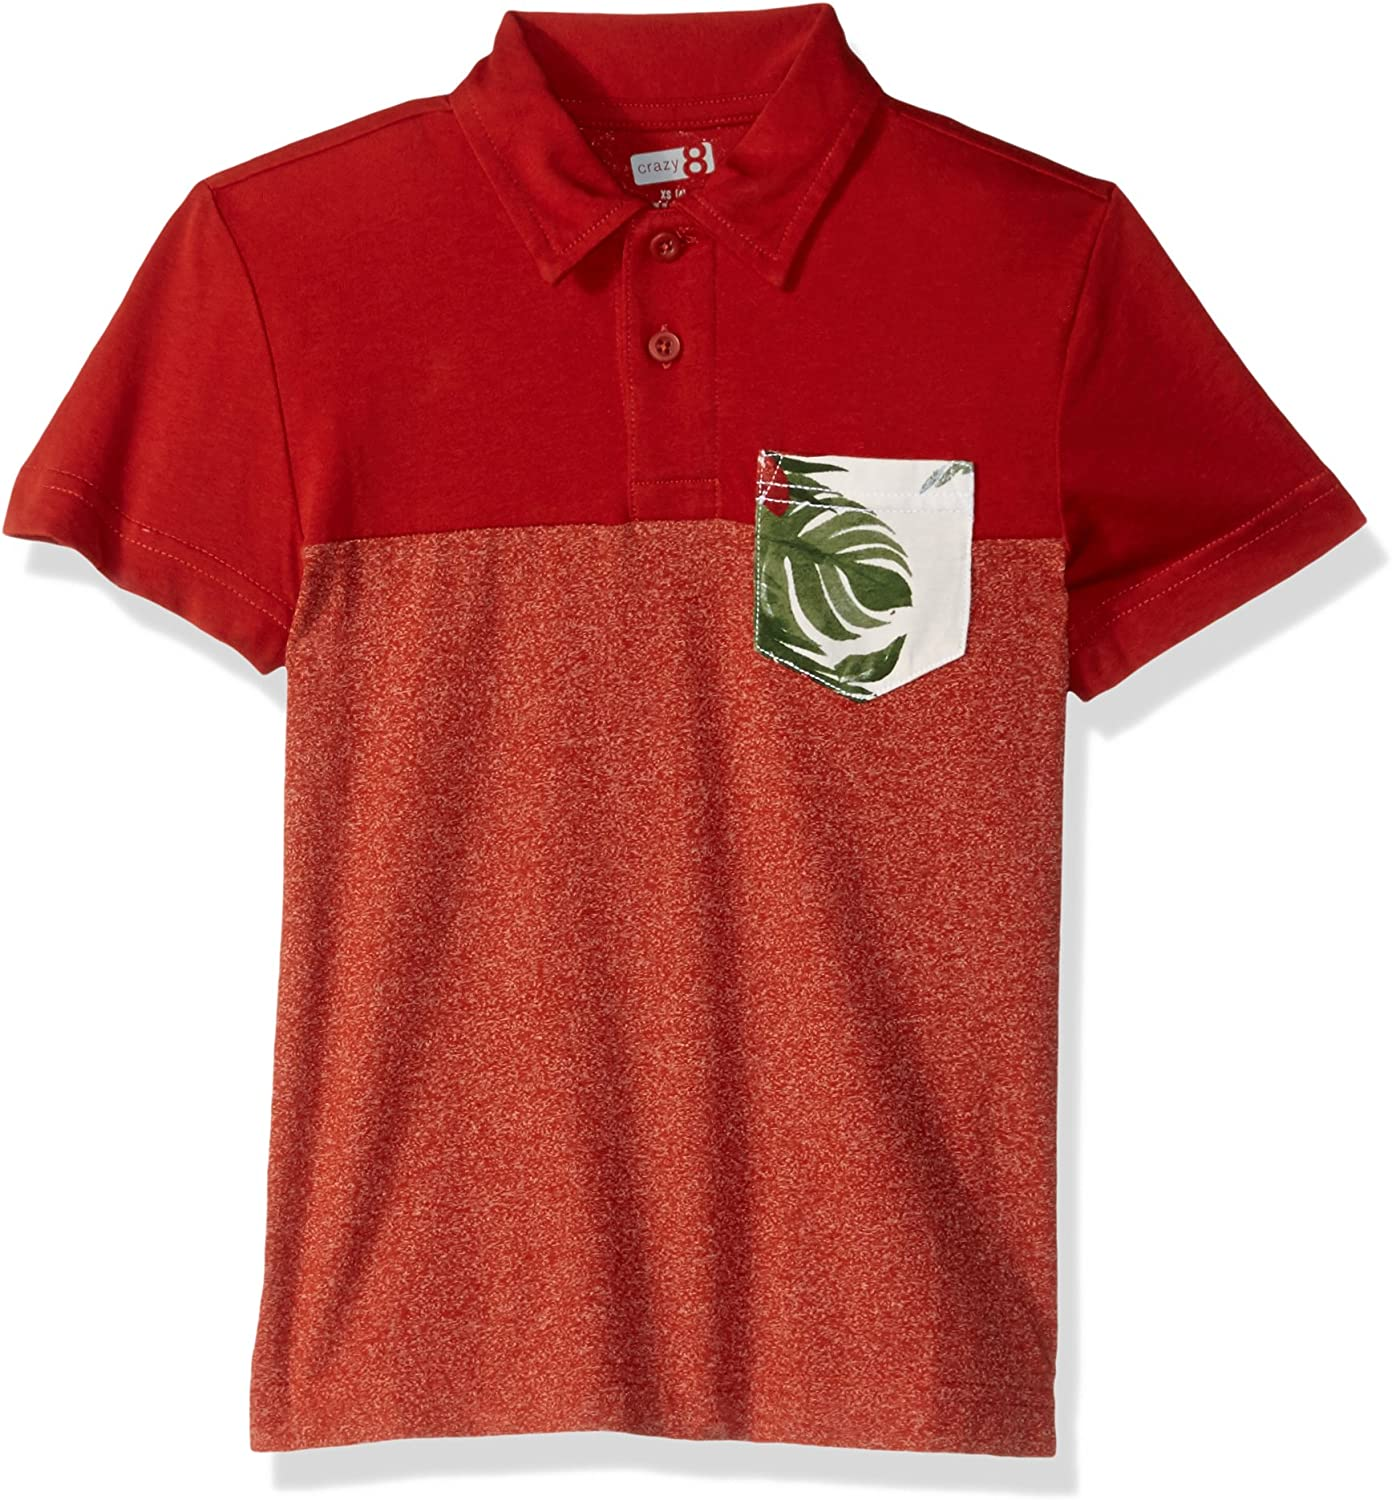 Crazy 8 Boys Short Sleeve Color Block Pocket Polo Tee